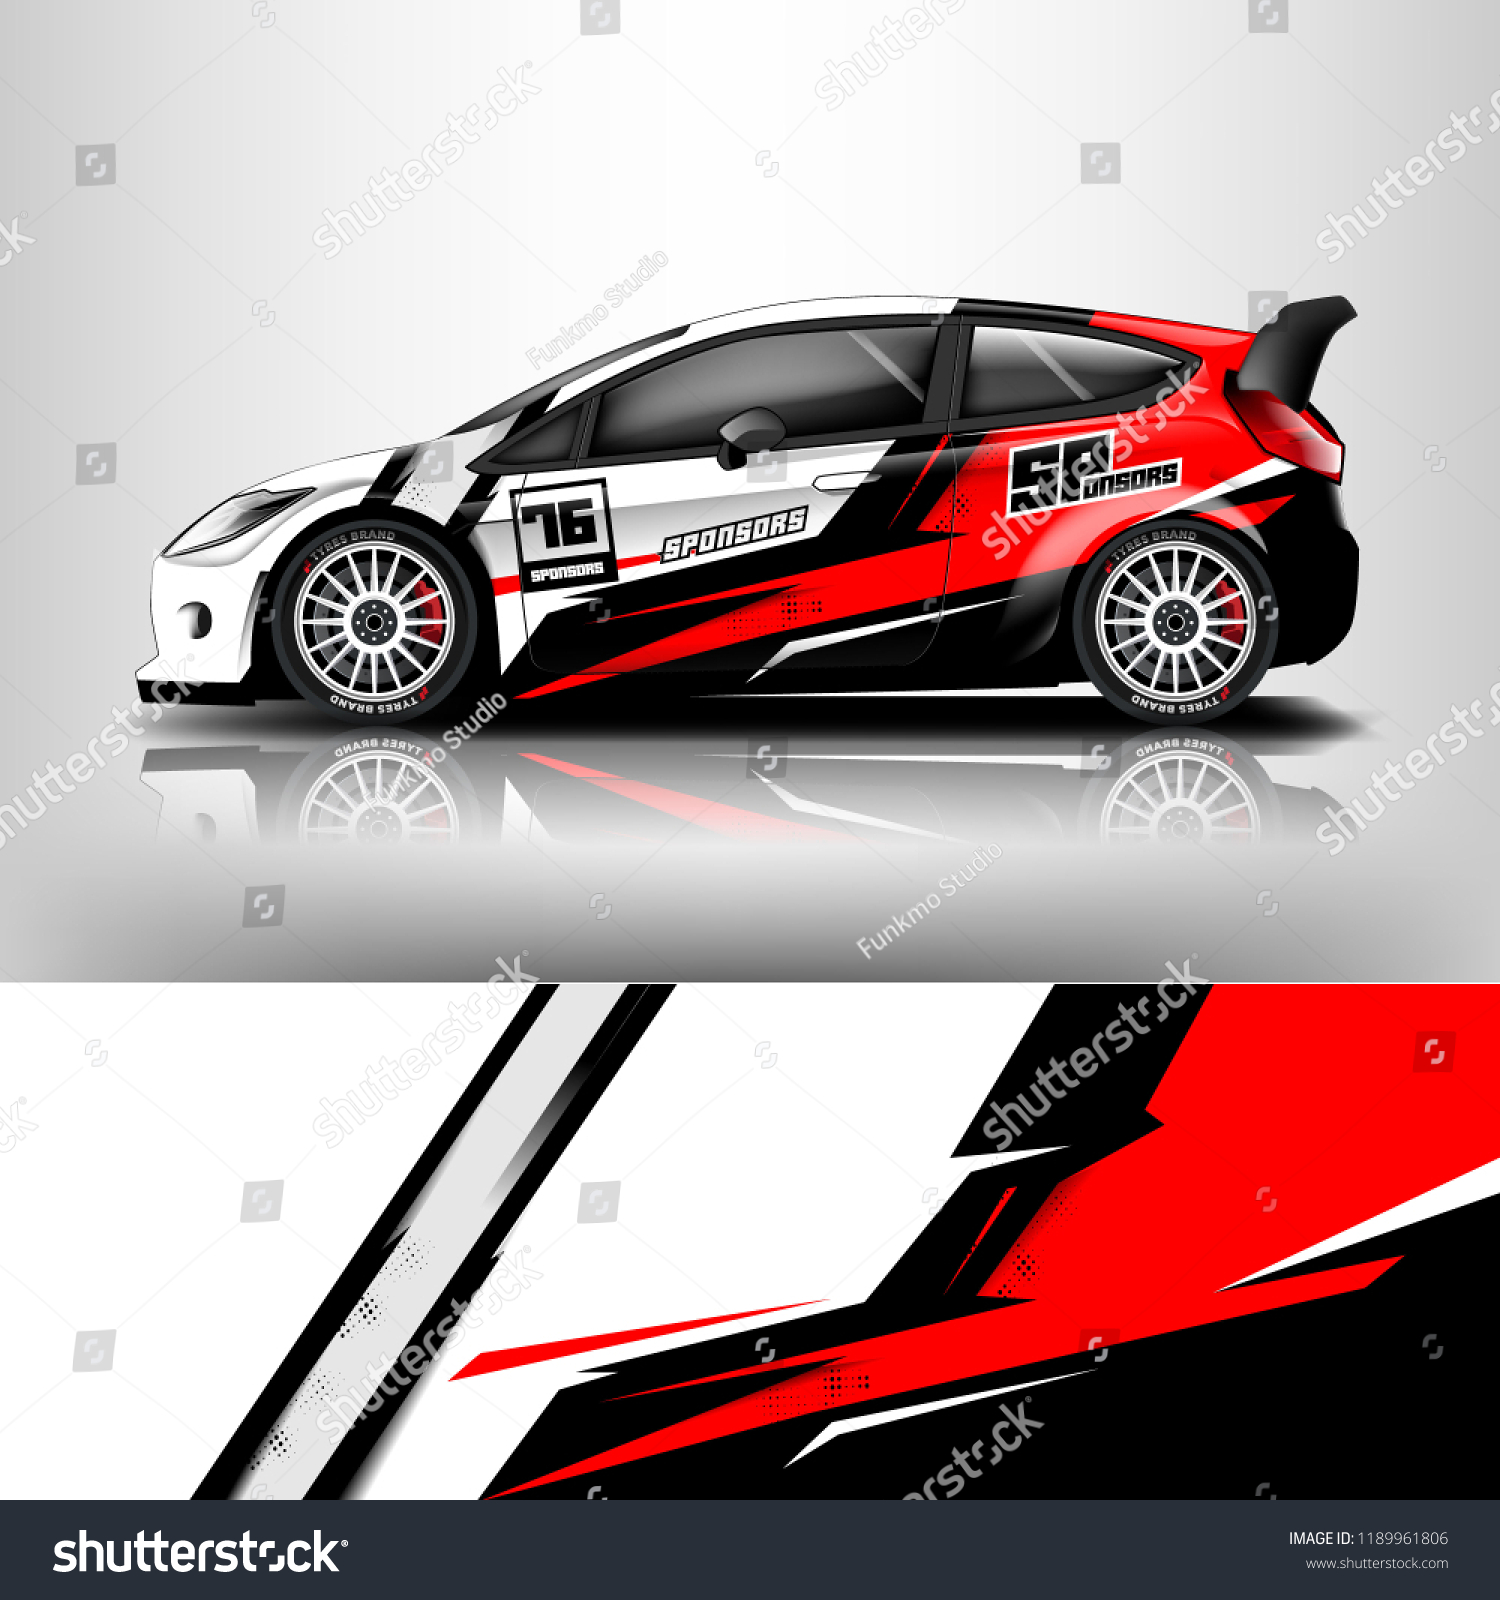 Car wrap design racing car wrap vinyl sticker graphic abstract stripe designs for branding and racing car